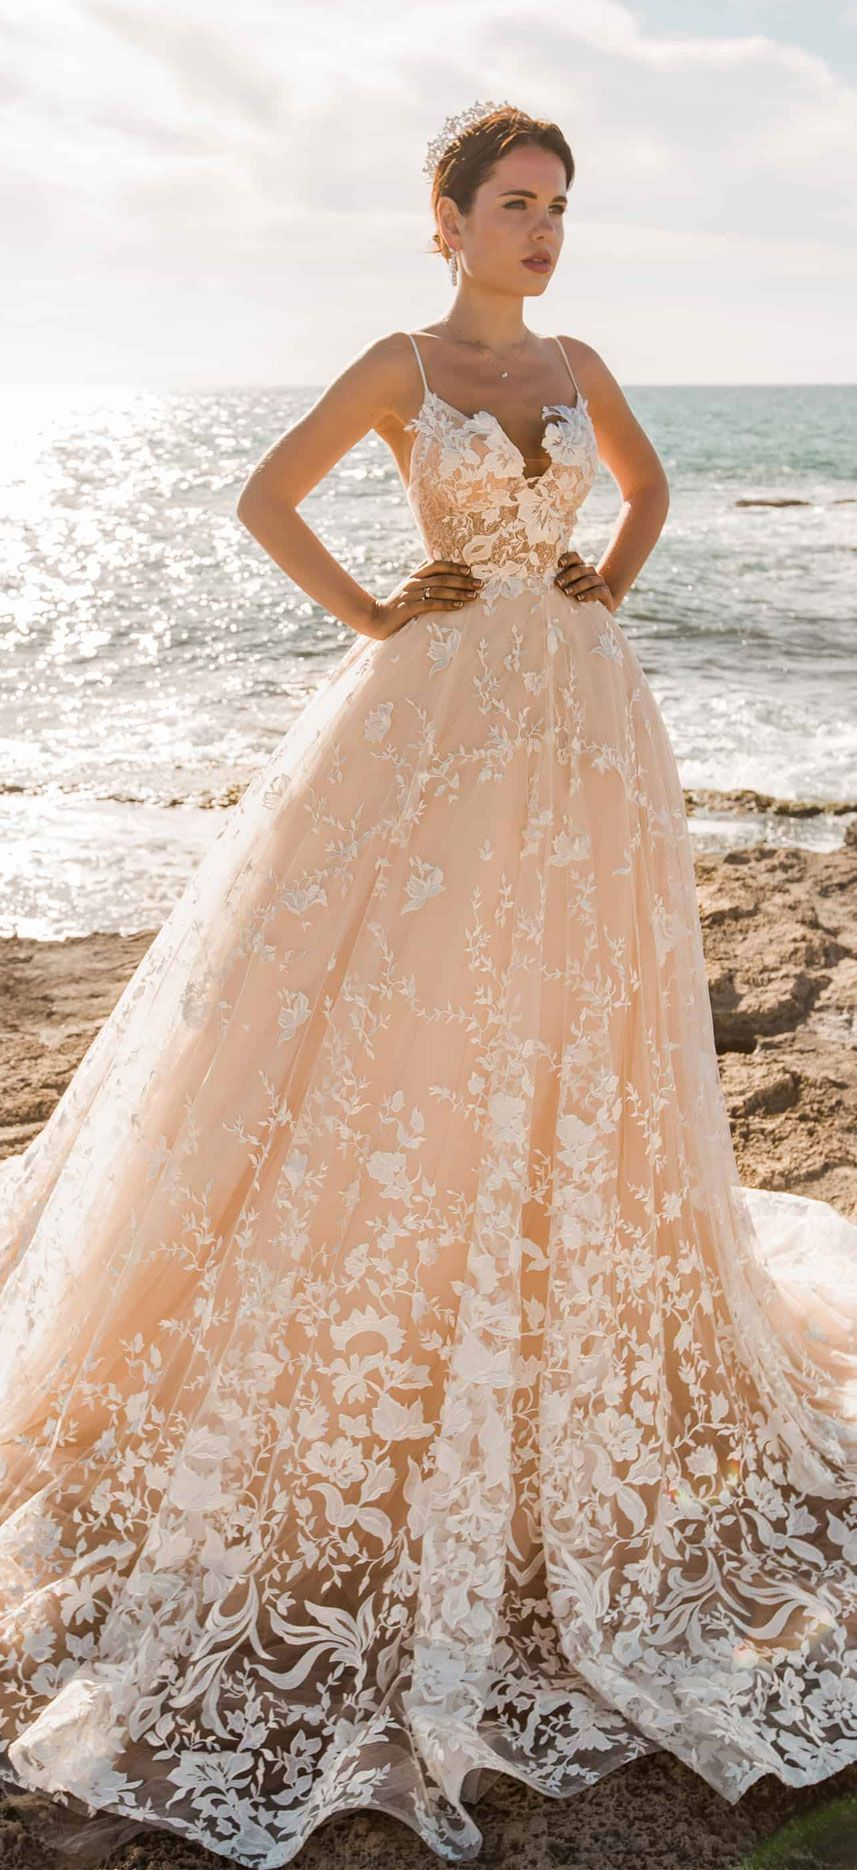 32 Beach Wedding Dresses Perfect For A Destination Wedding – Fab Wedding Dress…